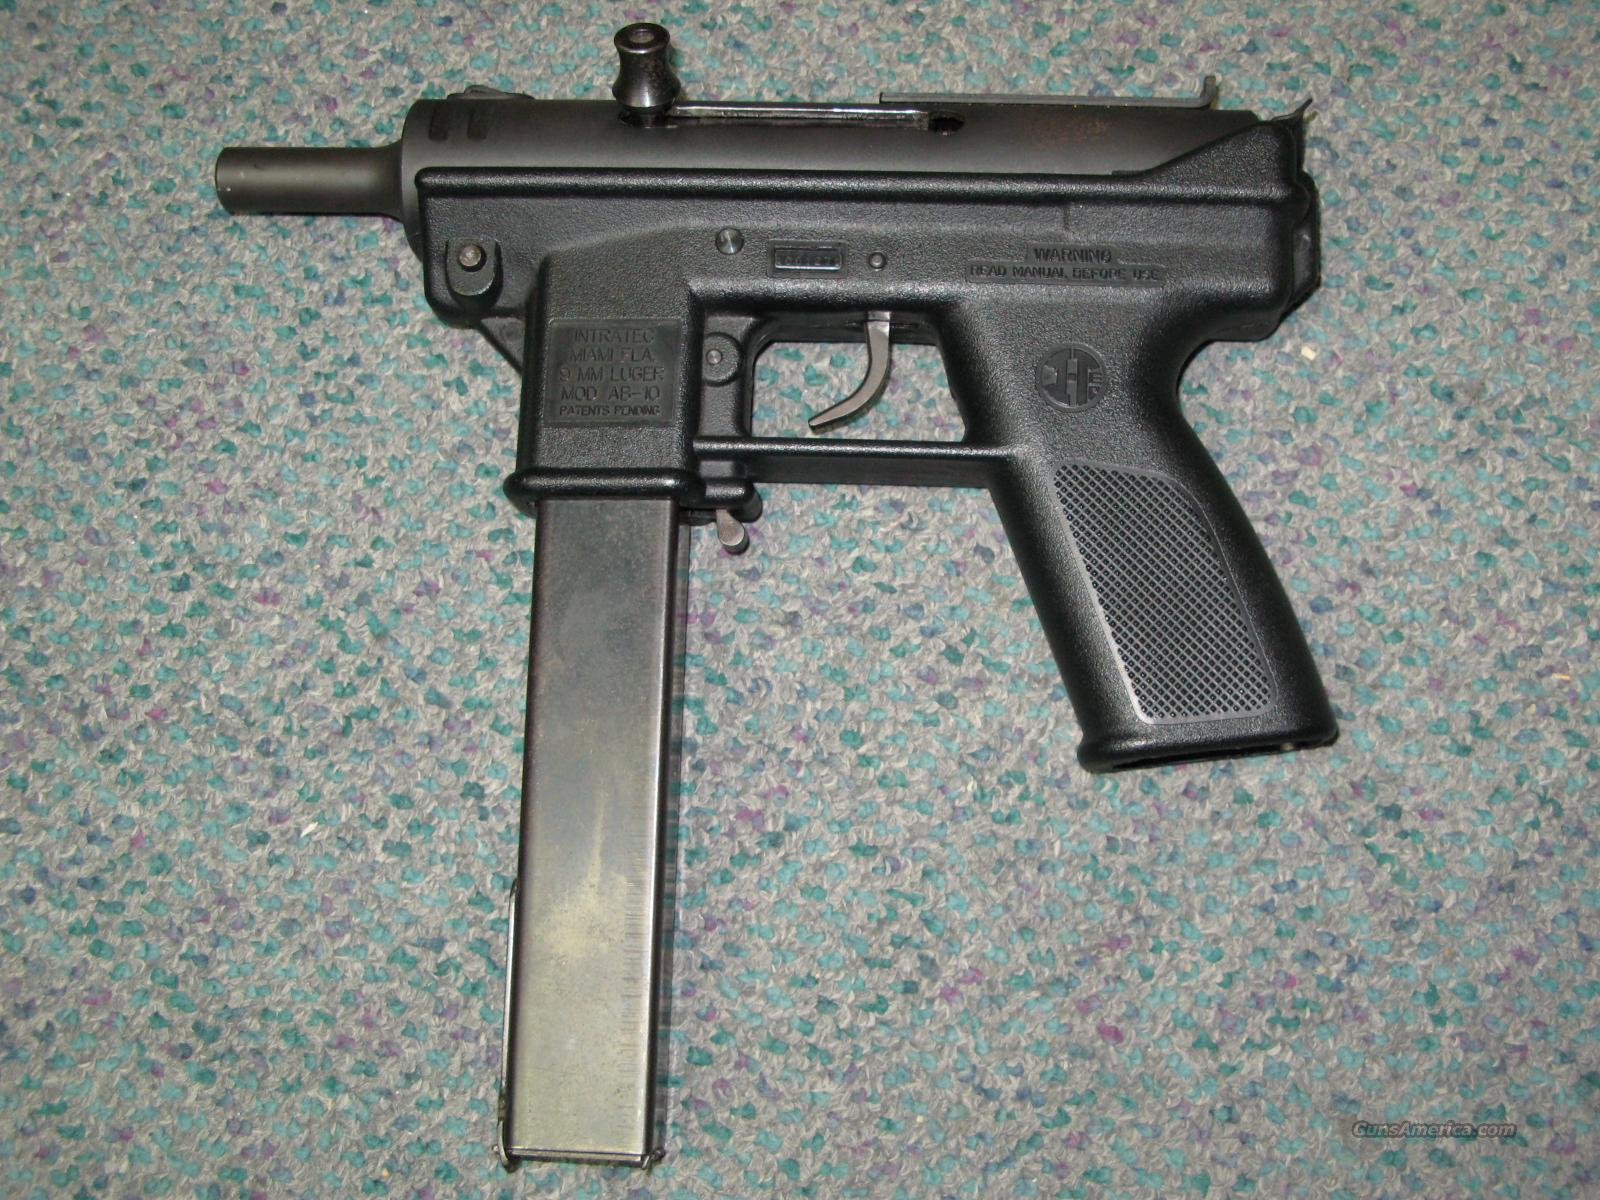 Intratec AB-10 TEC9 9mm  Guns > Pistols > Intratec Pistols